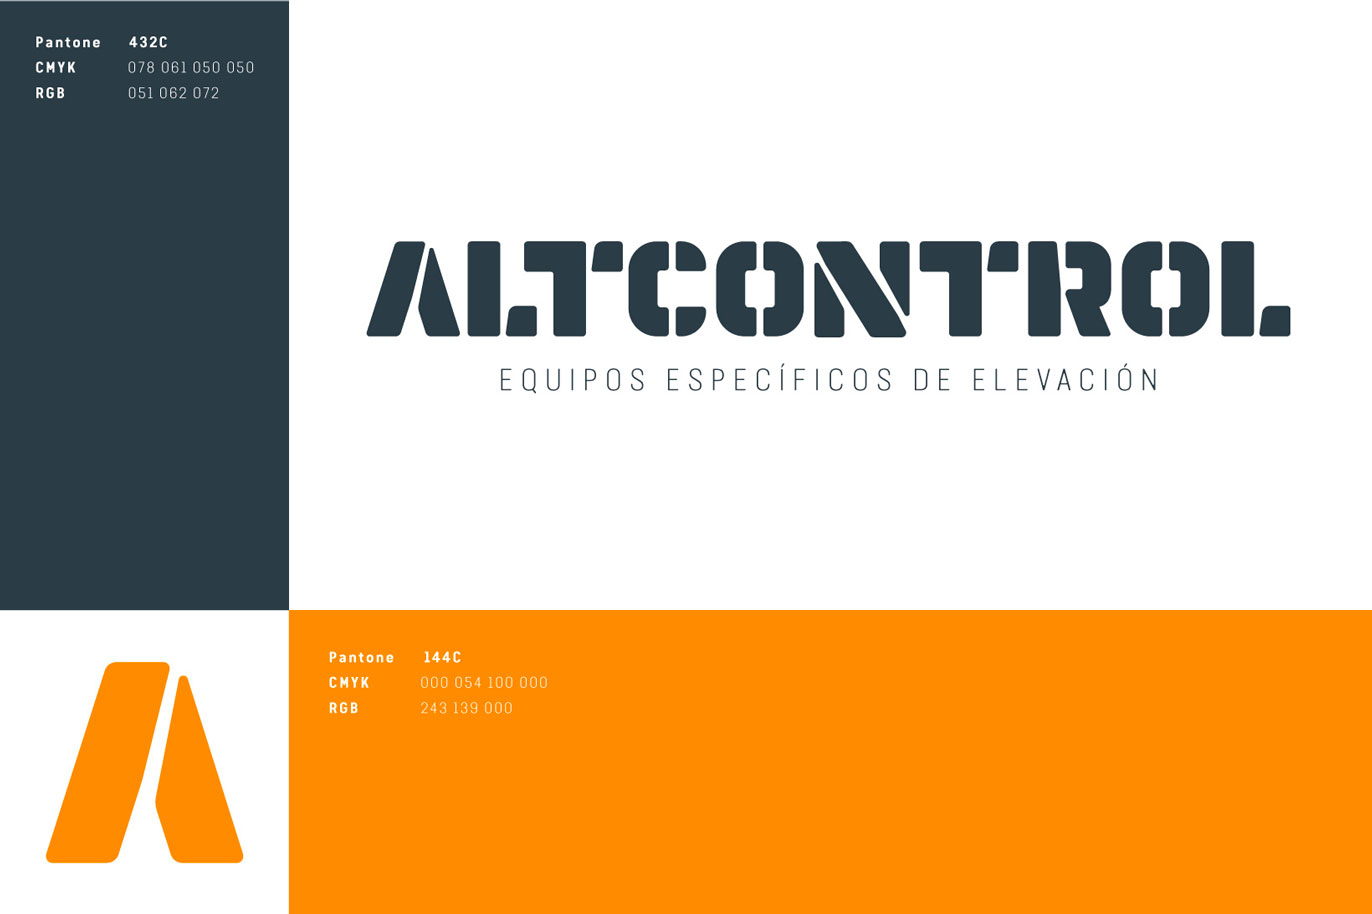 Altcontrol branding naming logo design corporate identity logotype typography style guide Vibranding